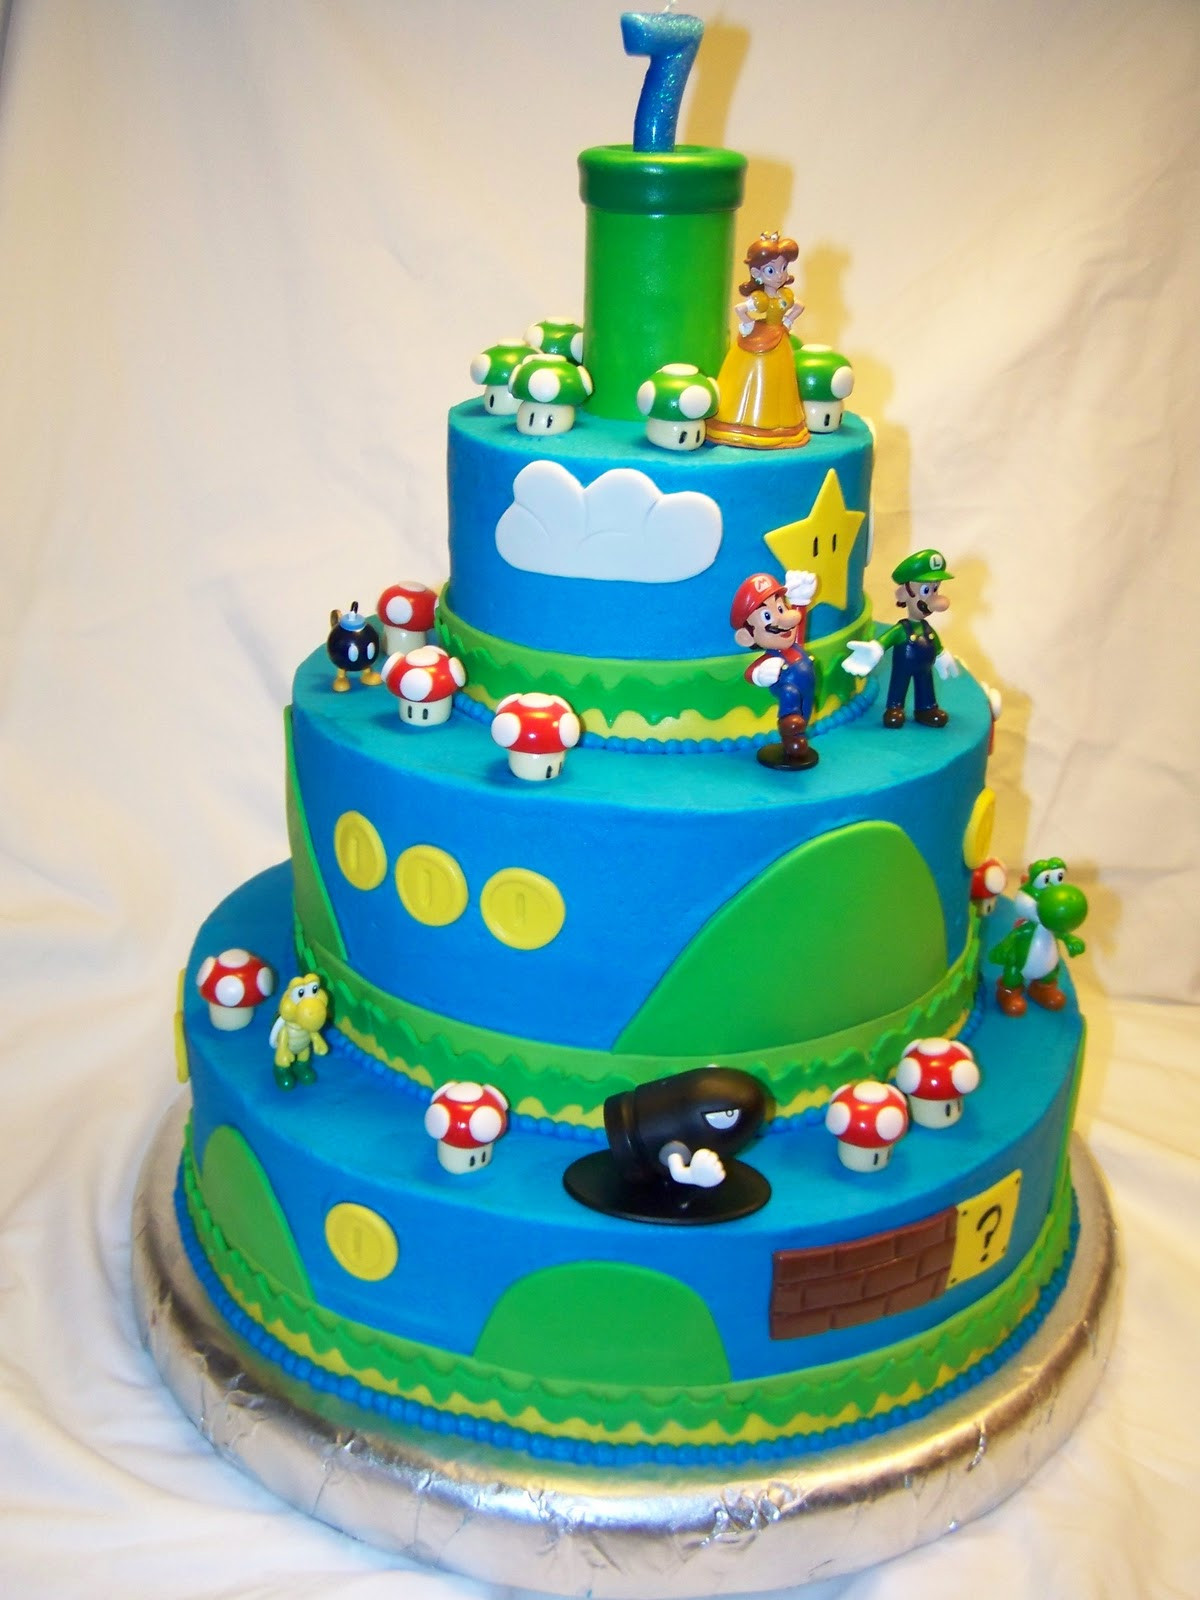 Best ideas about Super Mario Birthday Cake . Save or Pin Cakes by Kristen H Super Mario Bros Cake Now.